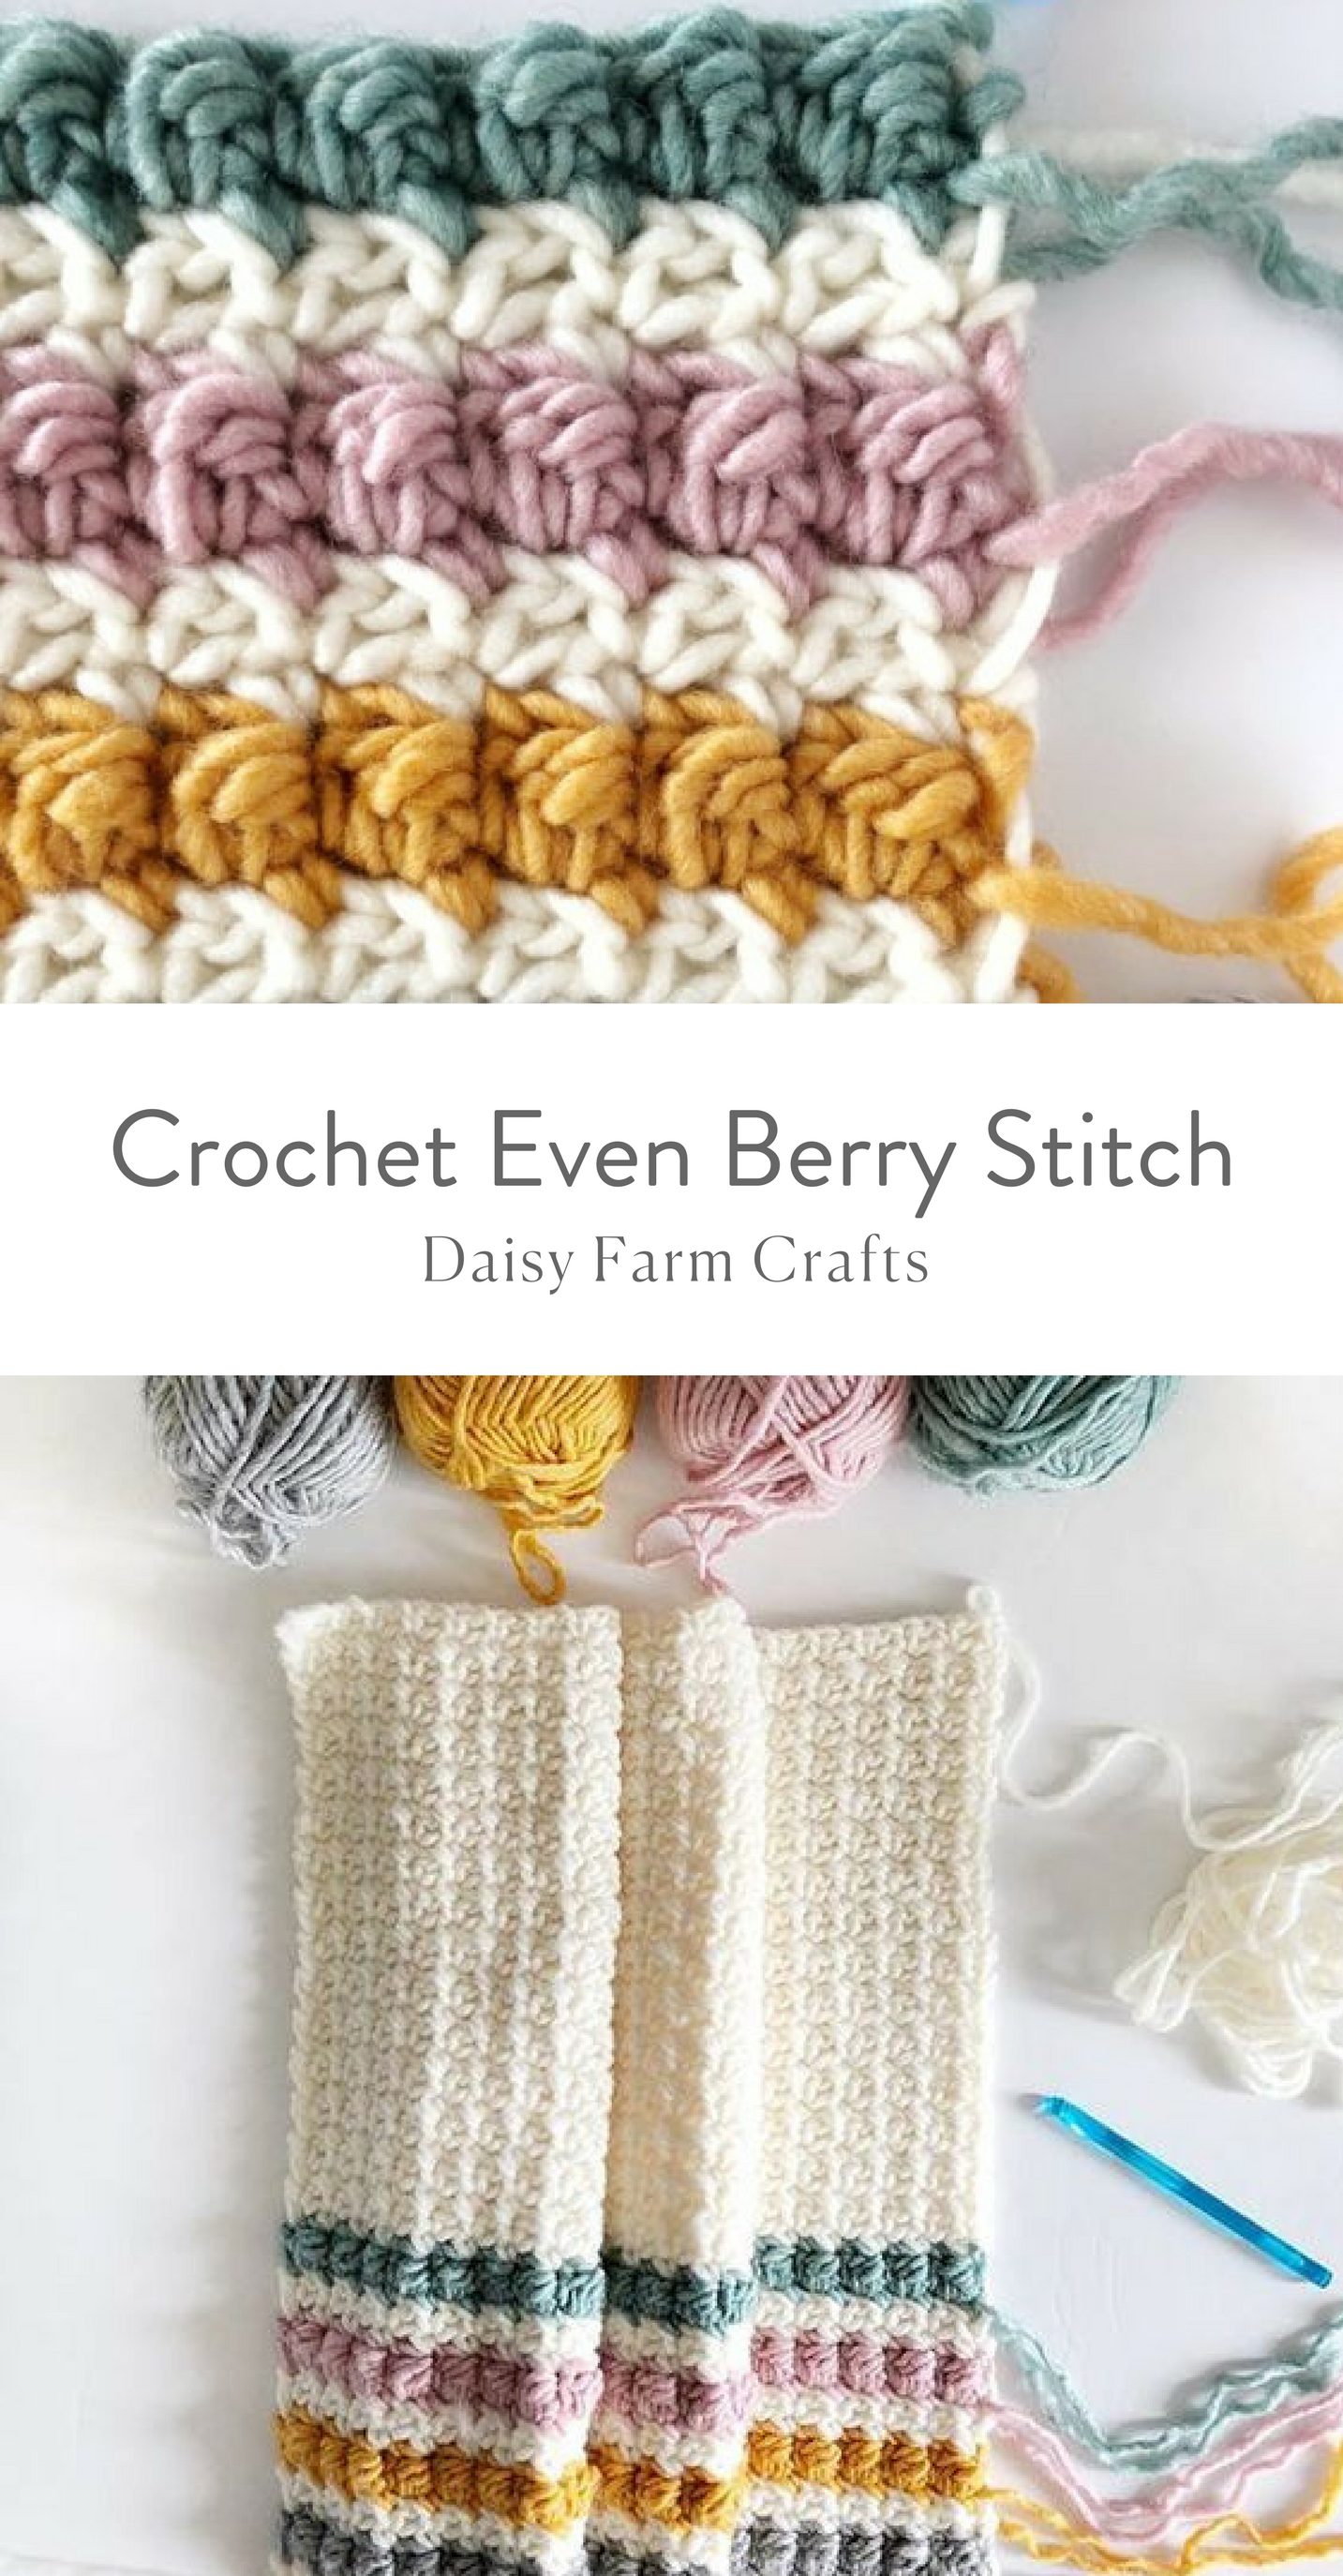 How to Crochet the Even Berry Stitch | Crochet | Pinterest ...